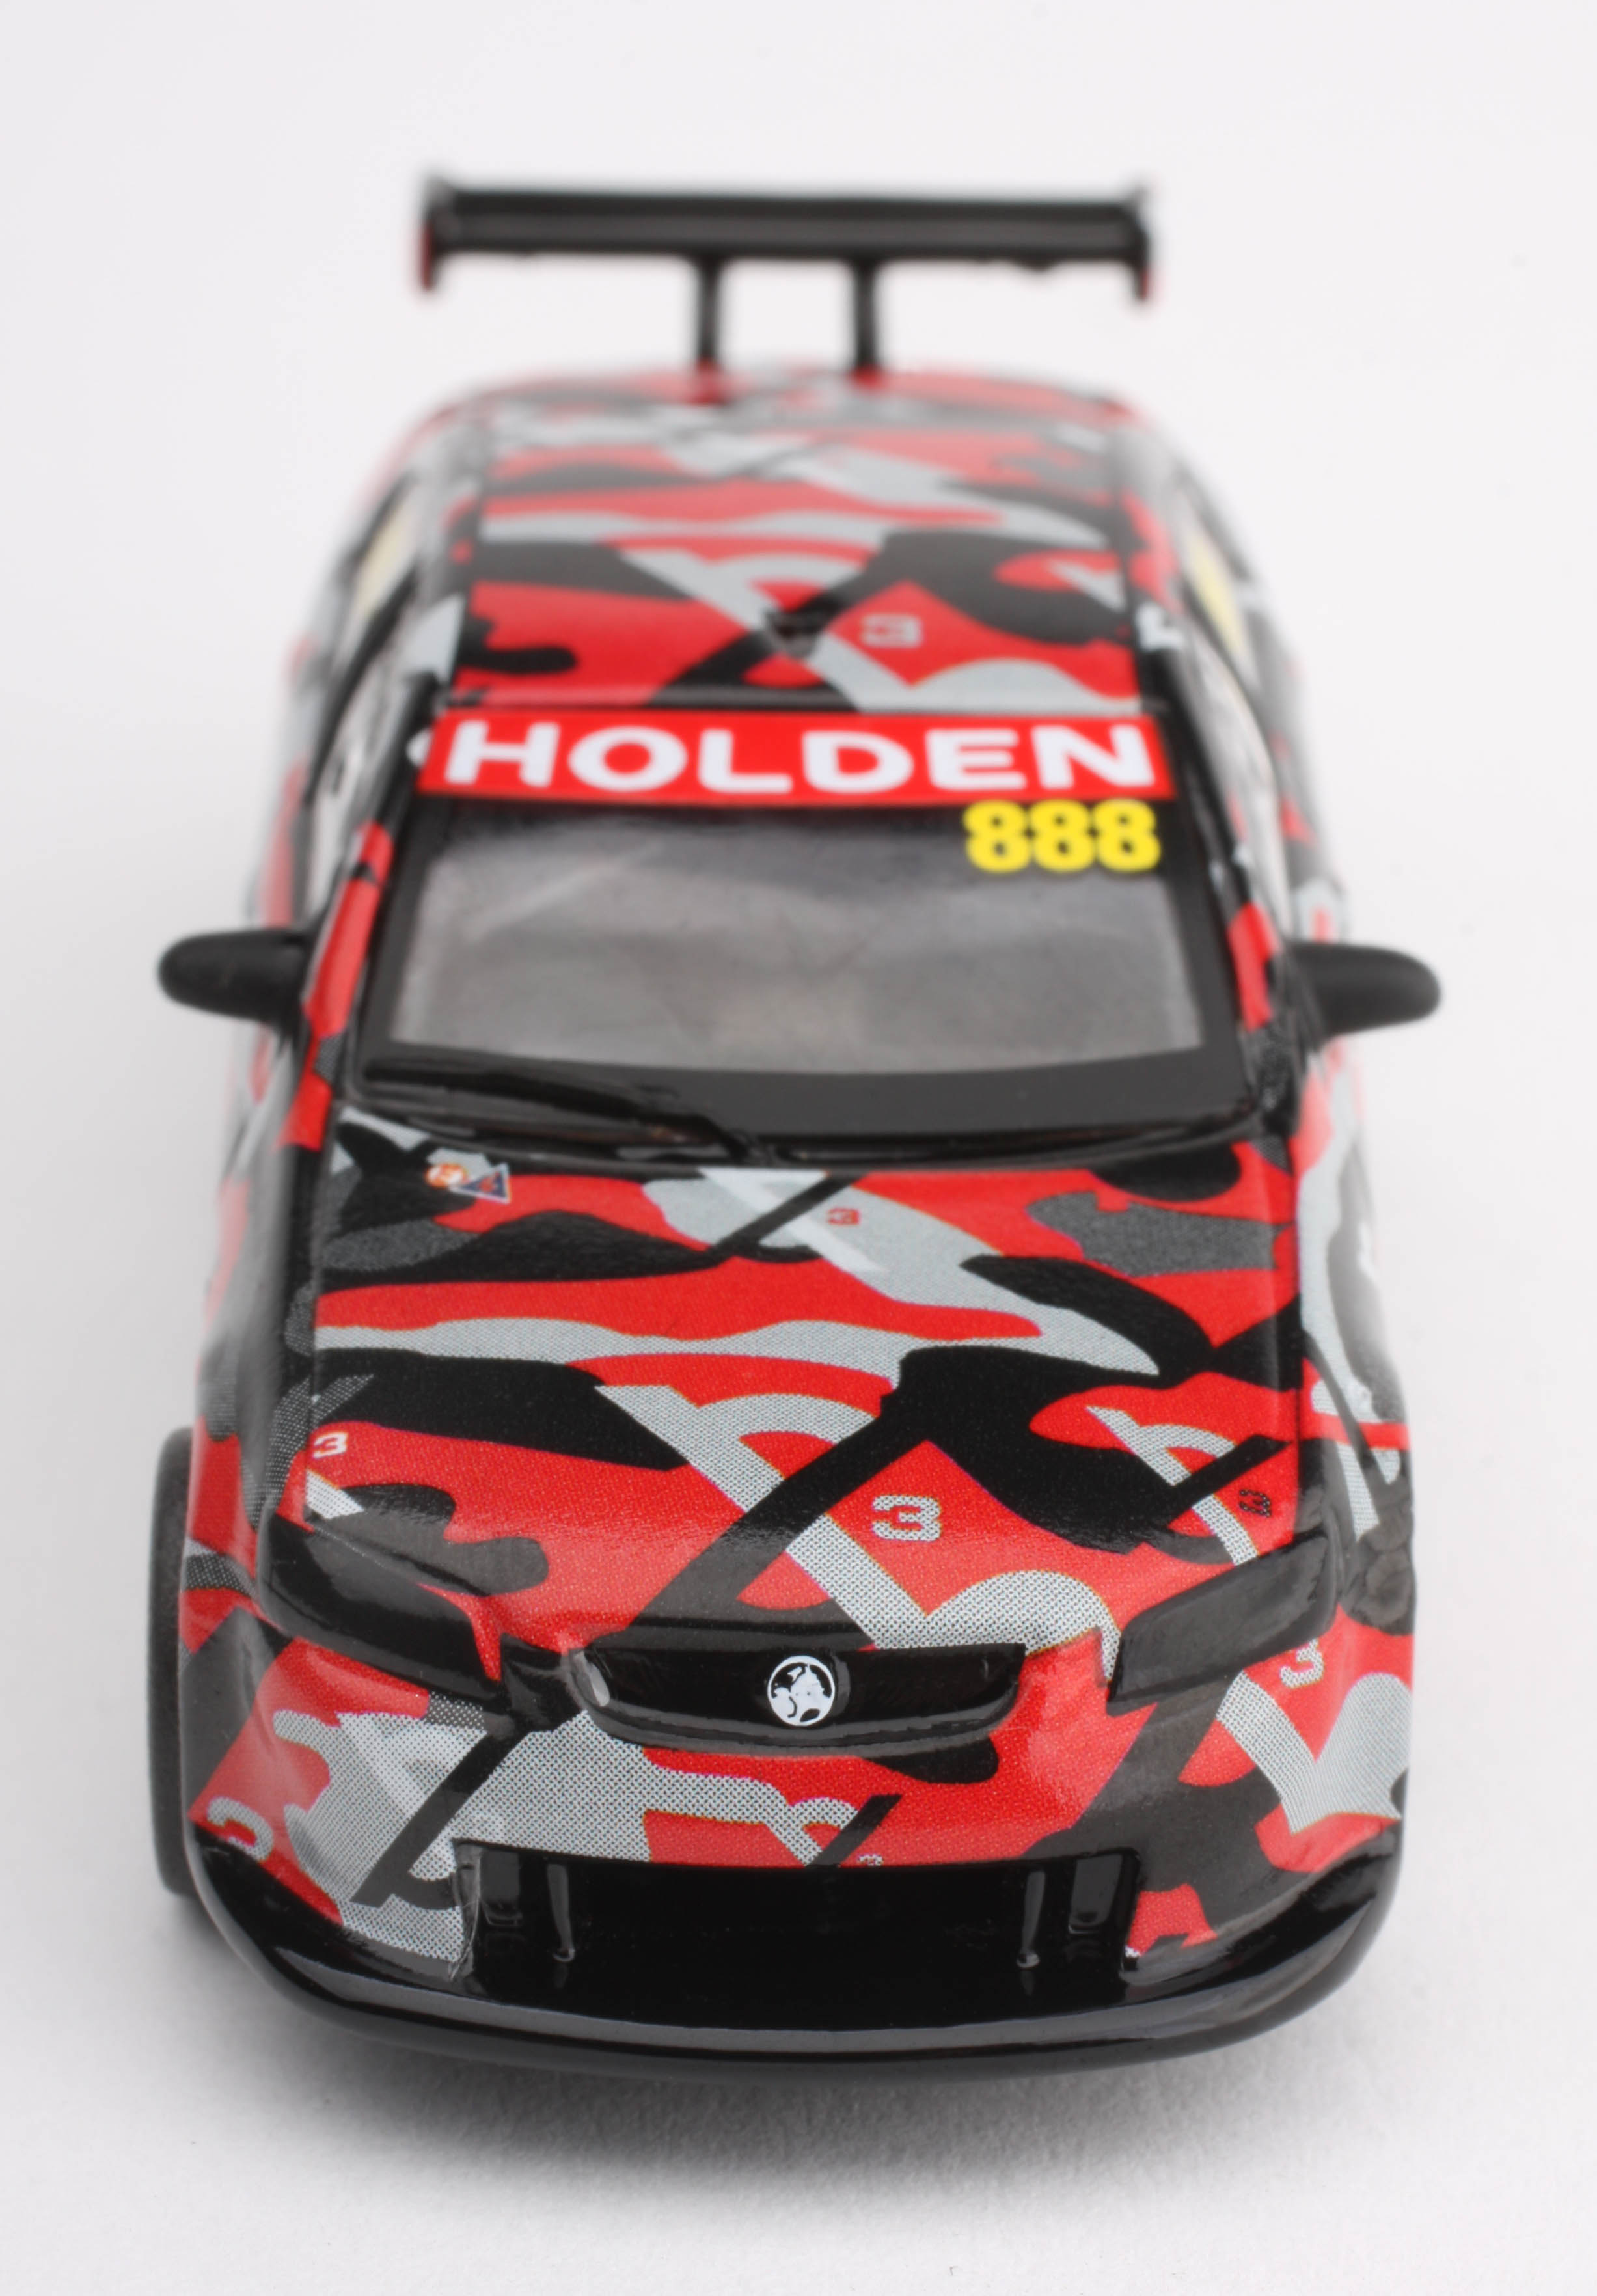 Holden Commodore Car of the Future Diecast Model Car